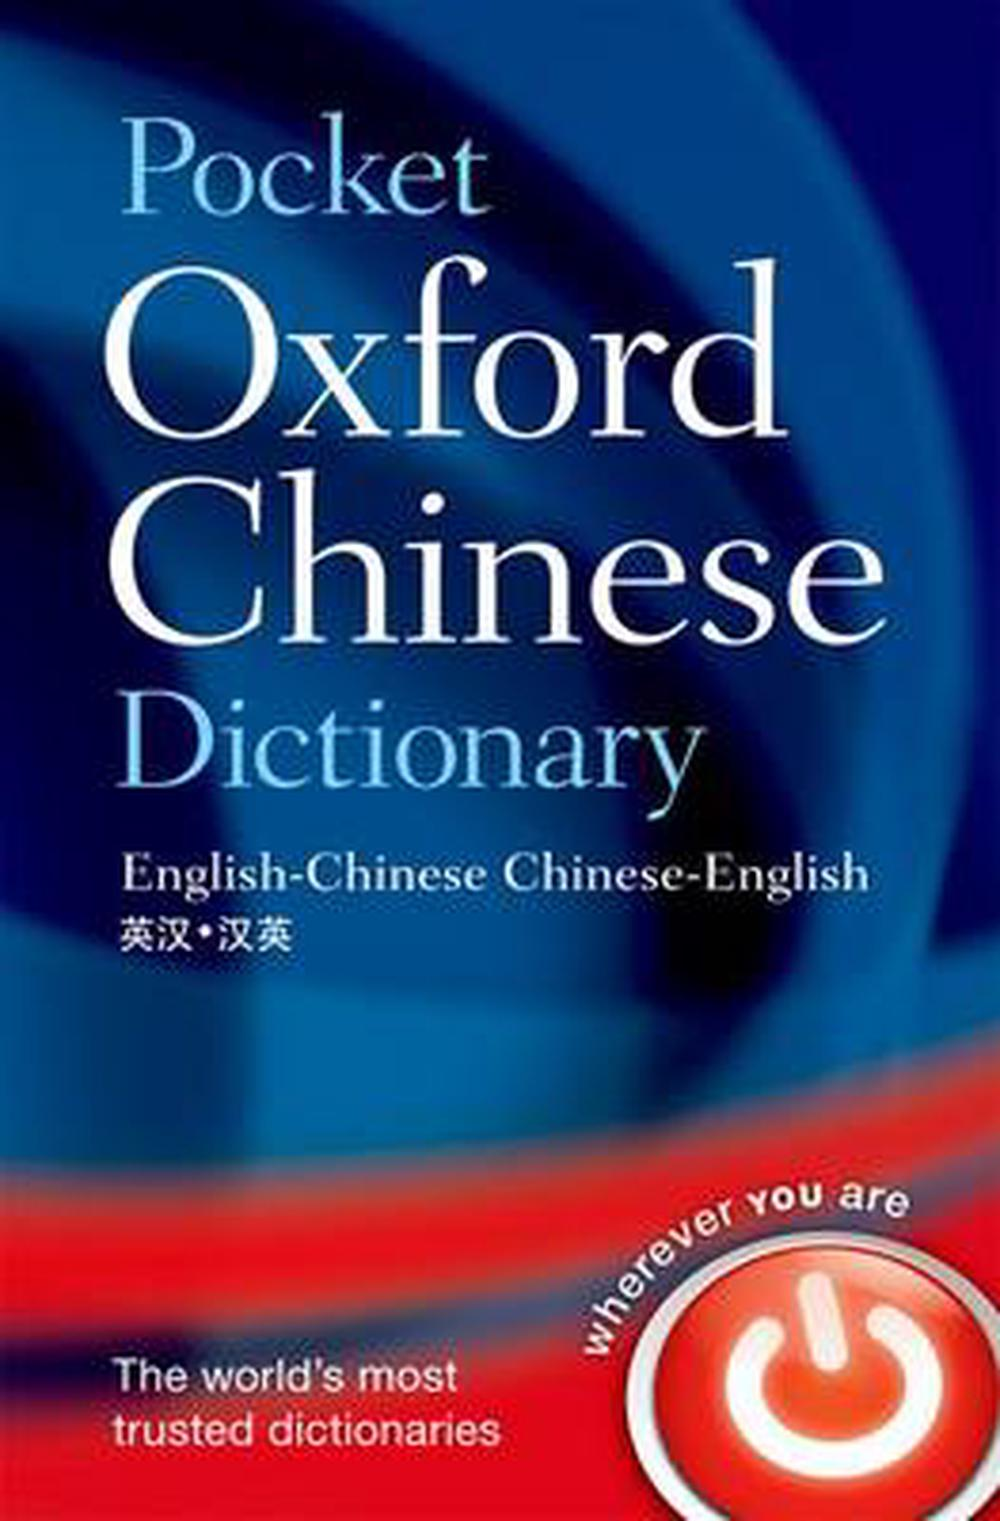 Pocket Oxford Chinese Dictionary: English-Chinese Chinese-English